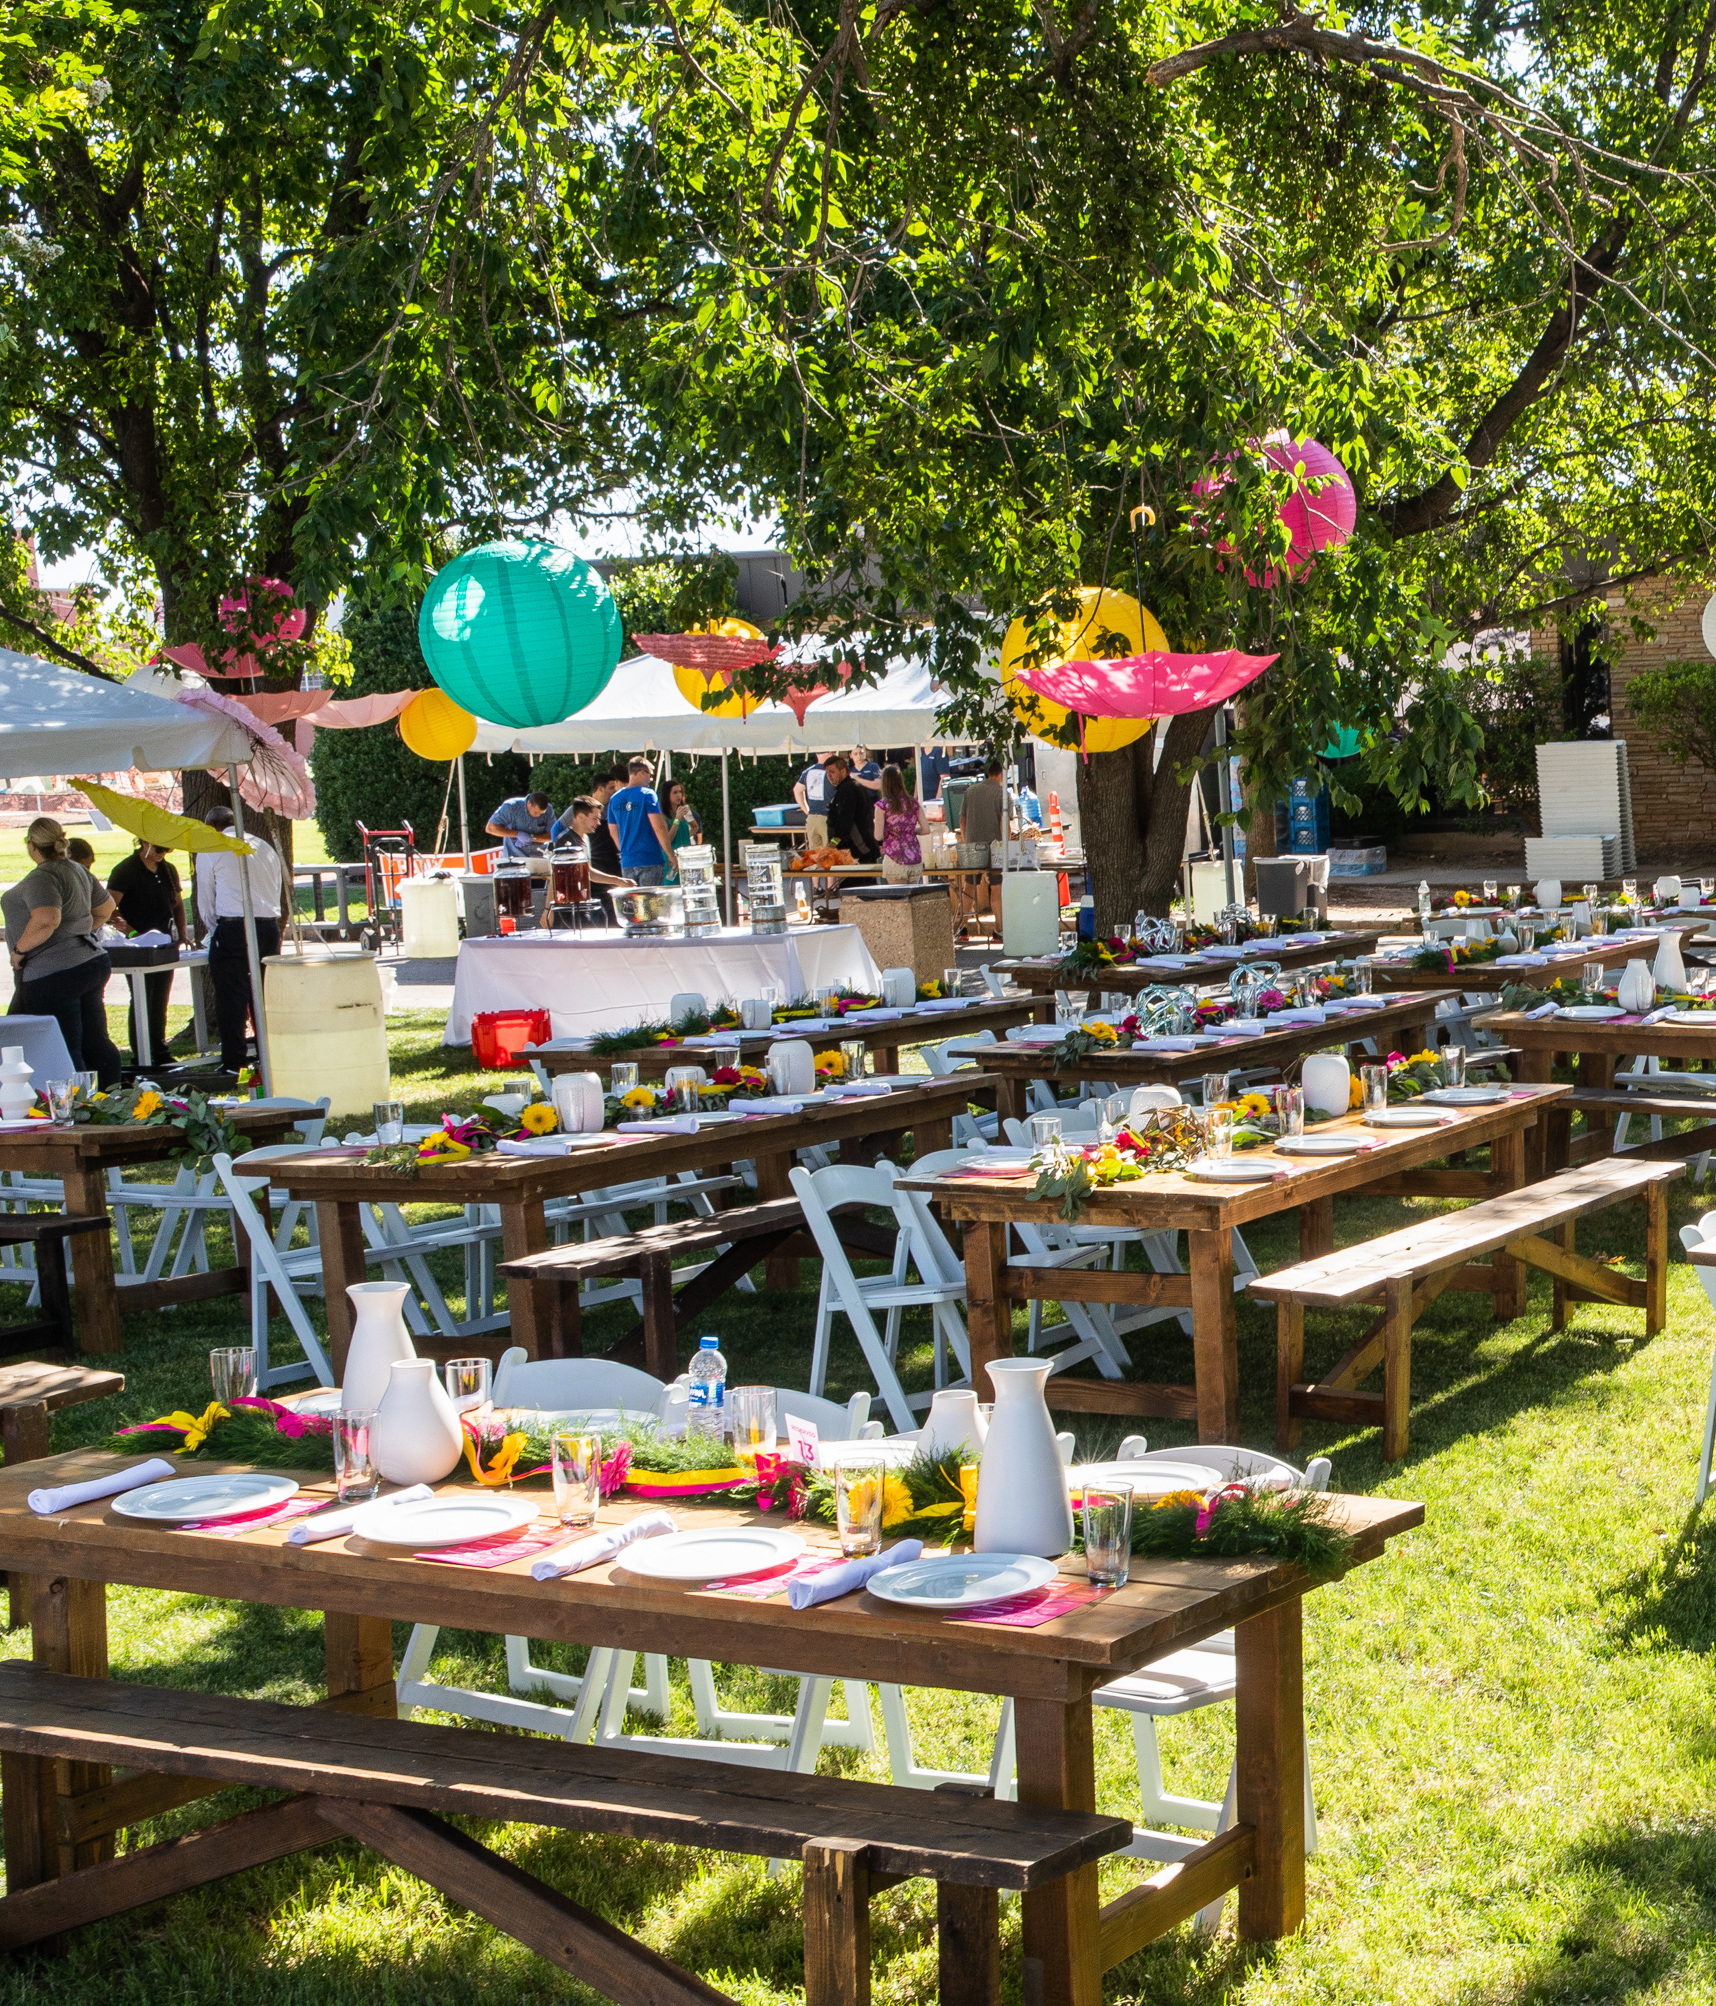 Farm-style tables covered in place setting stand under trees on a green lawn